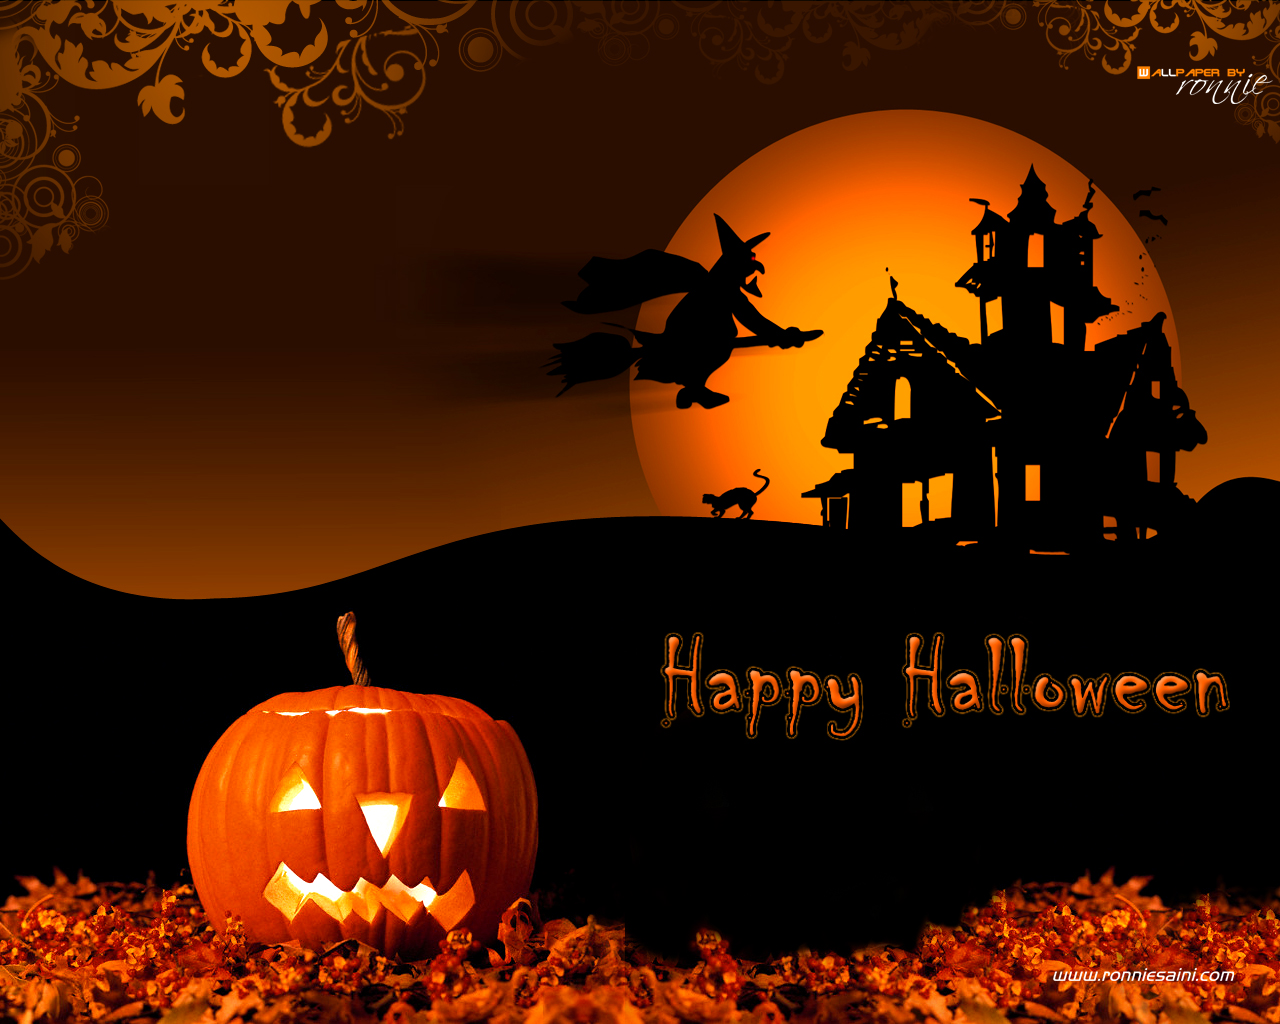 Halloween horror scaryholidayevent images pictures wallpapers 1280x1024